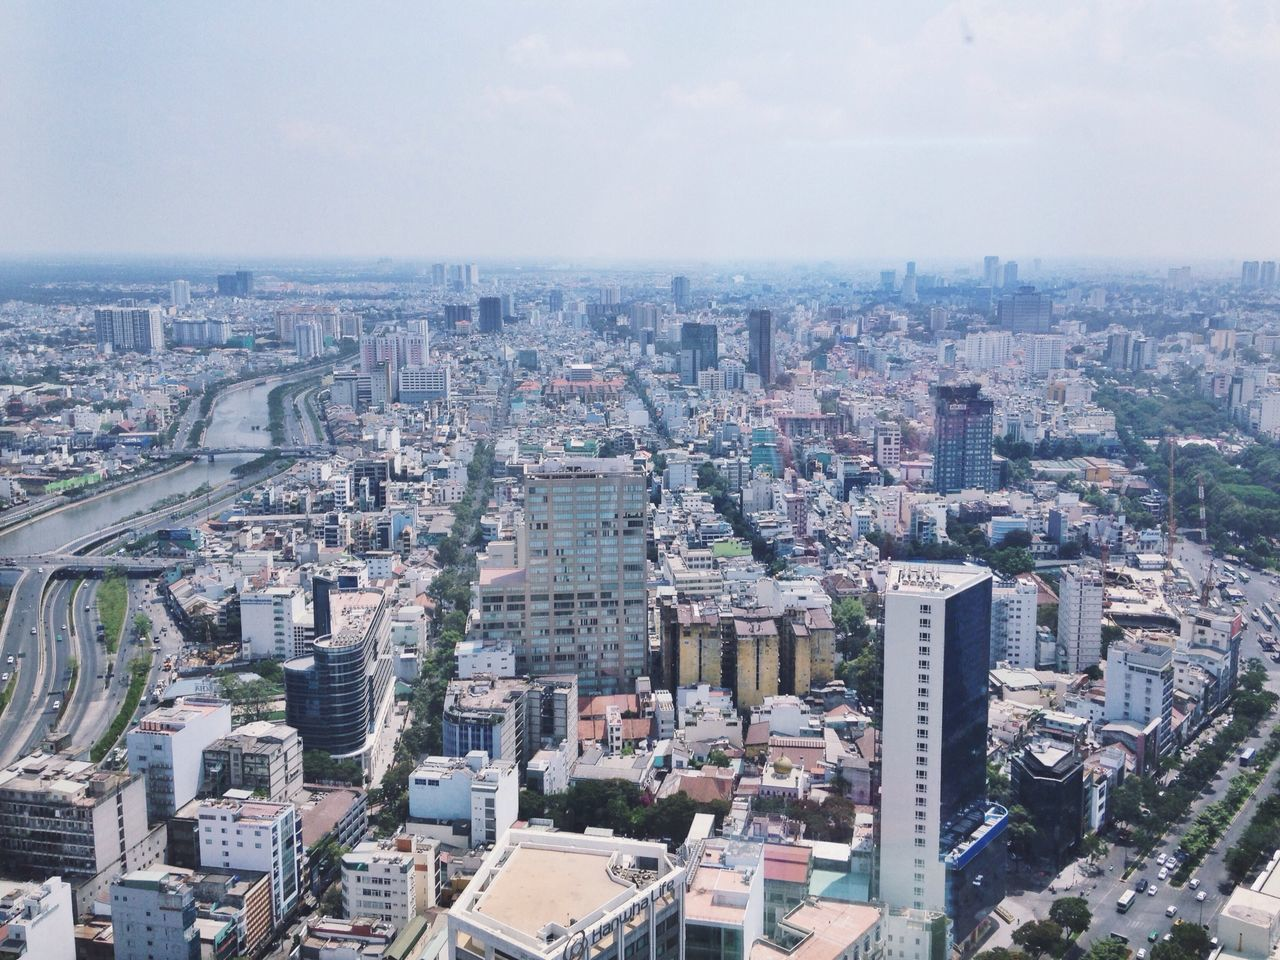 Bitexcotower Bitexco Tower Bitexco Panorama Hochiminhcity Hochiminh Hochiminh City Saigon Saigon City View City City Street Houses House Town